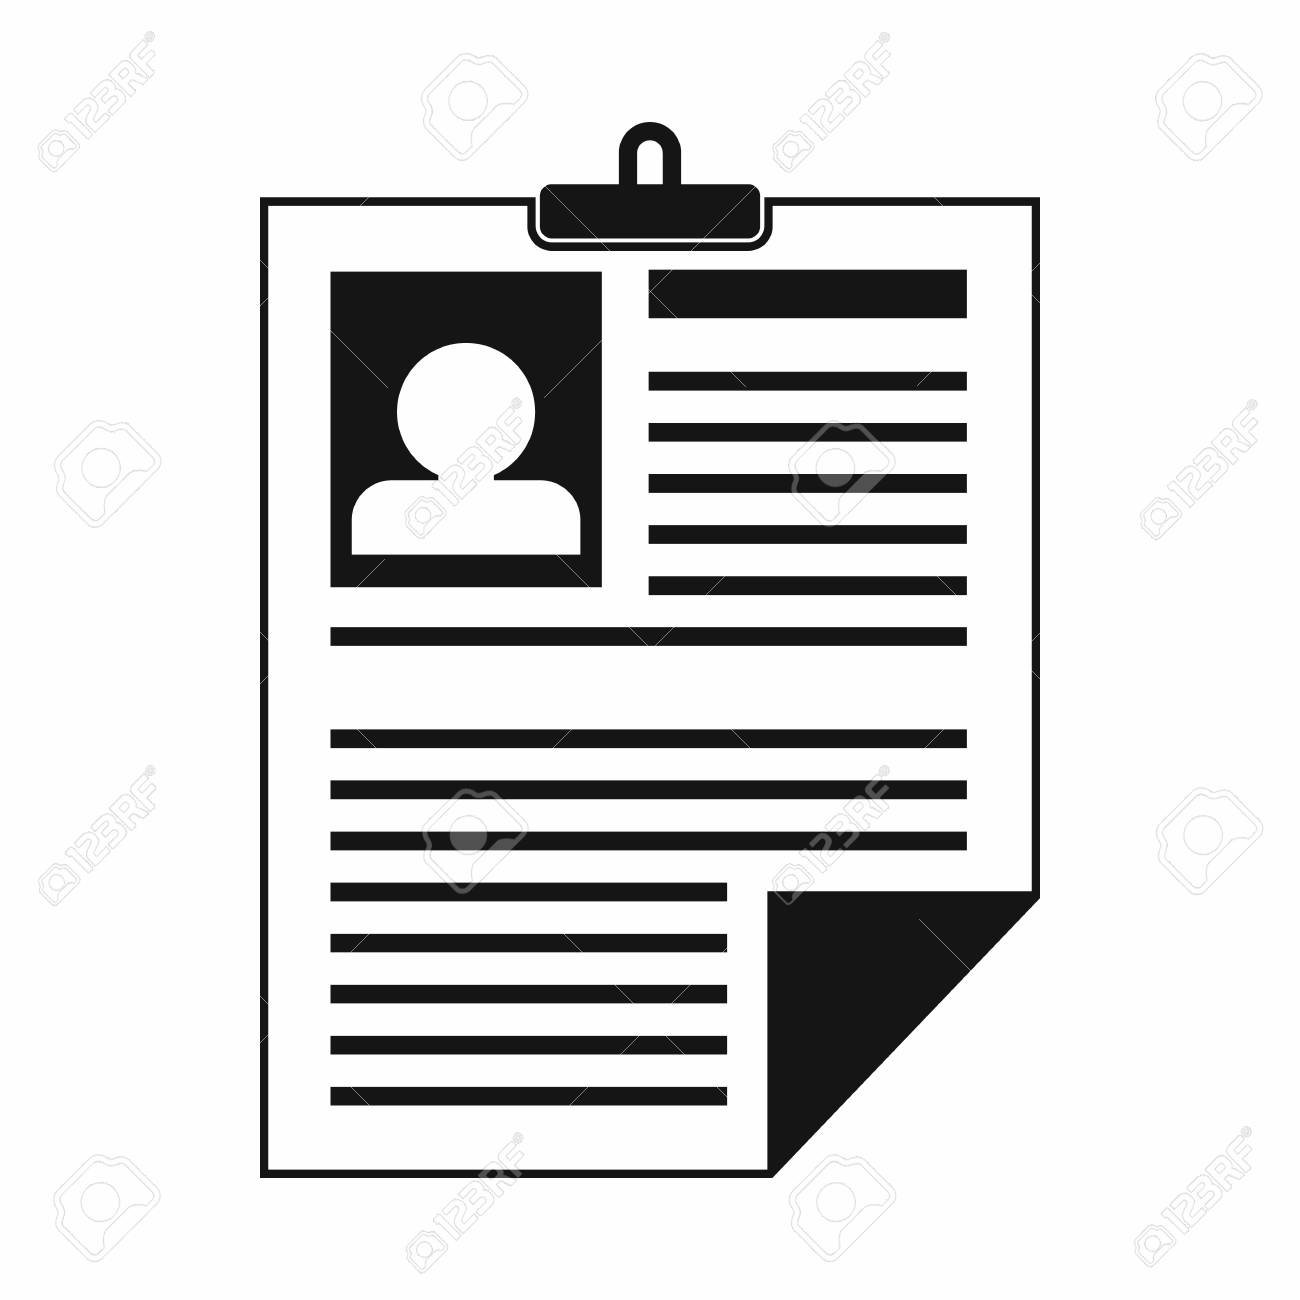 resume icon in simple style on a white background royalty free